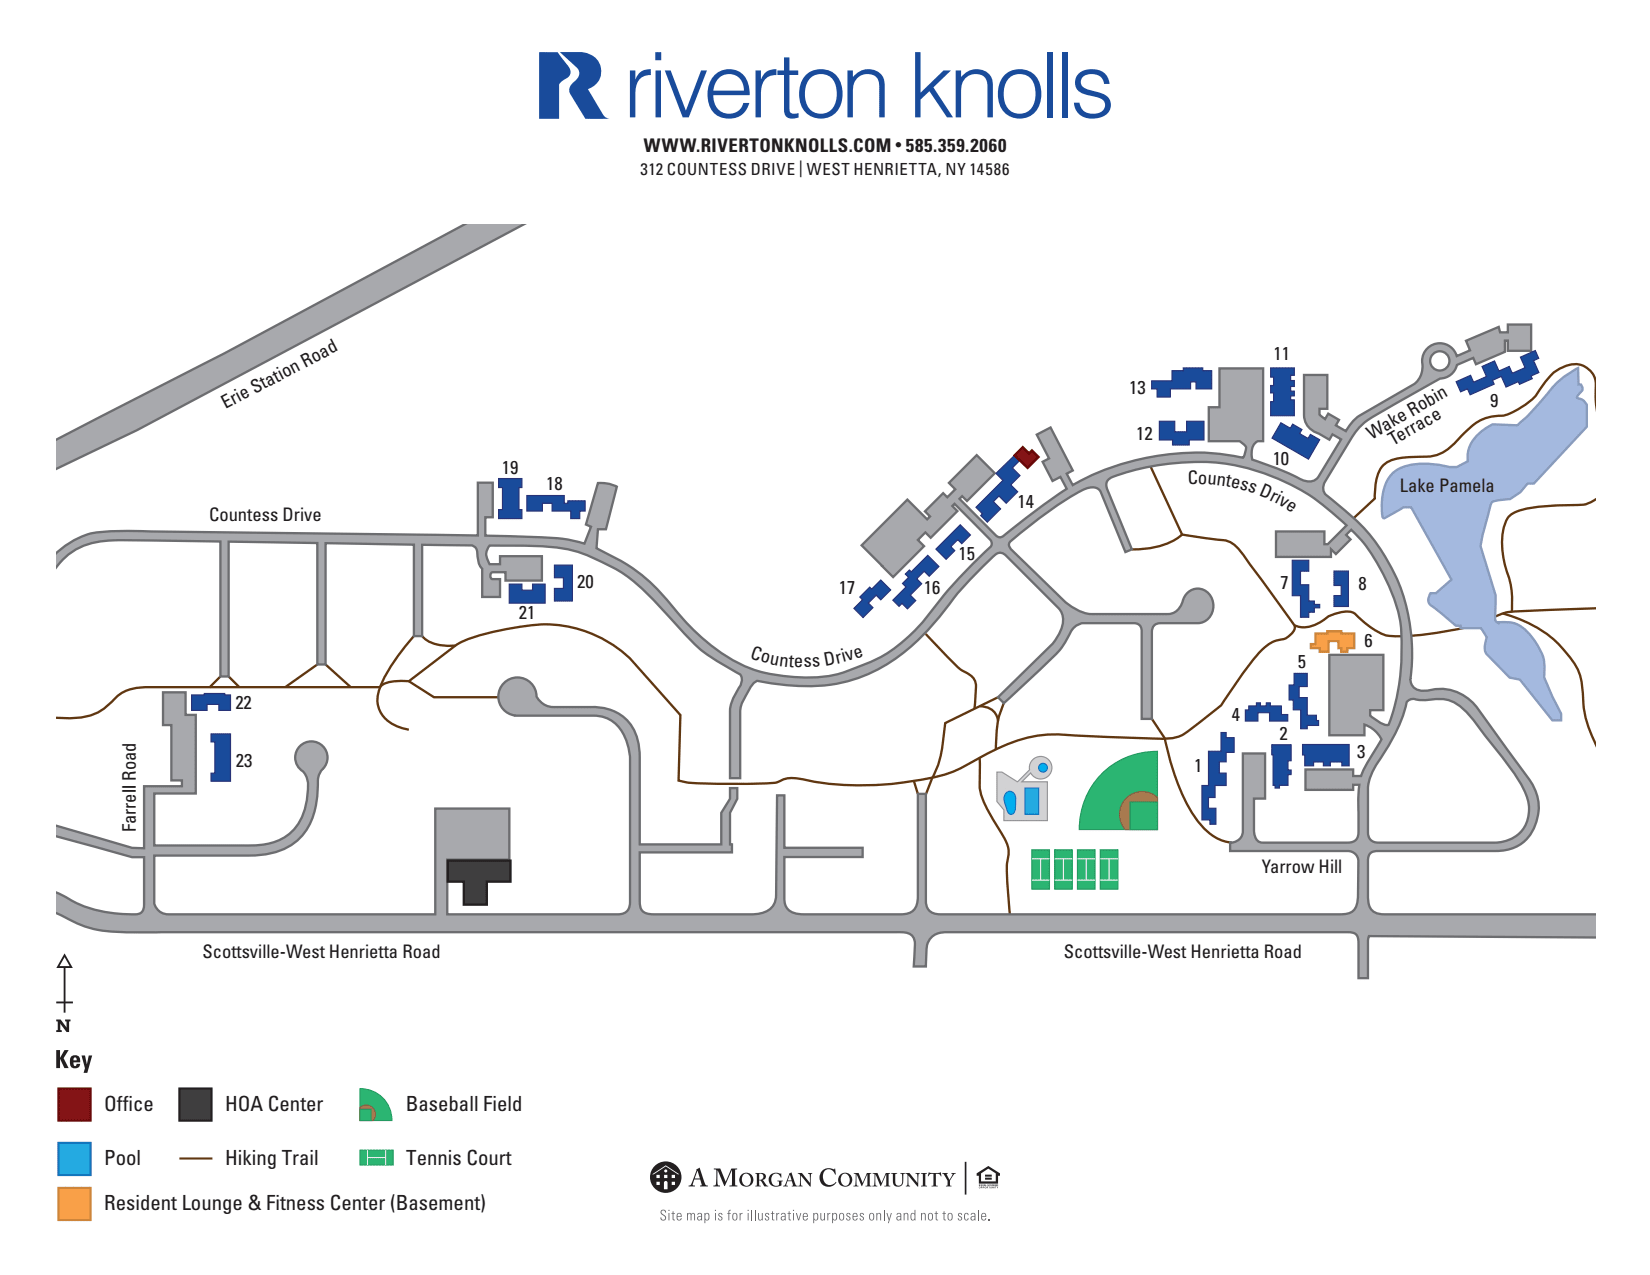 Directions to Riverton Knolls in West Henrietta New York